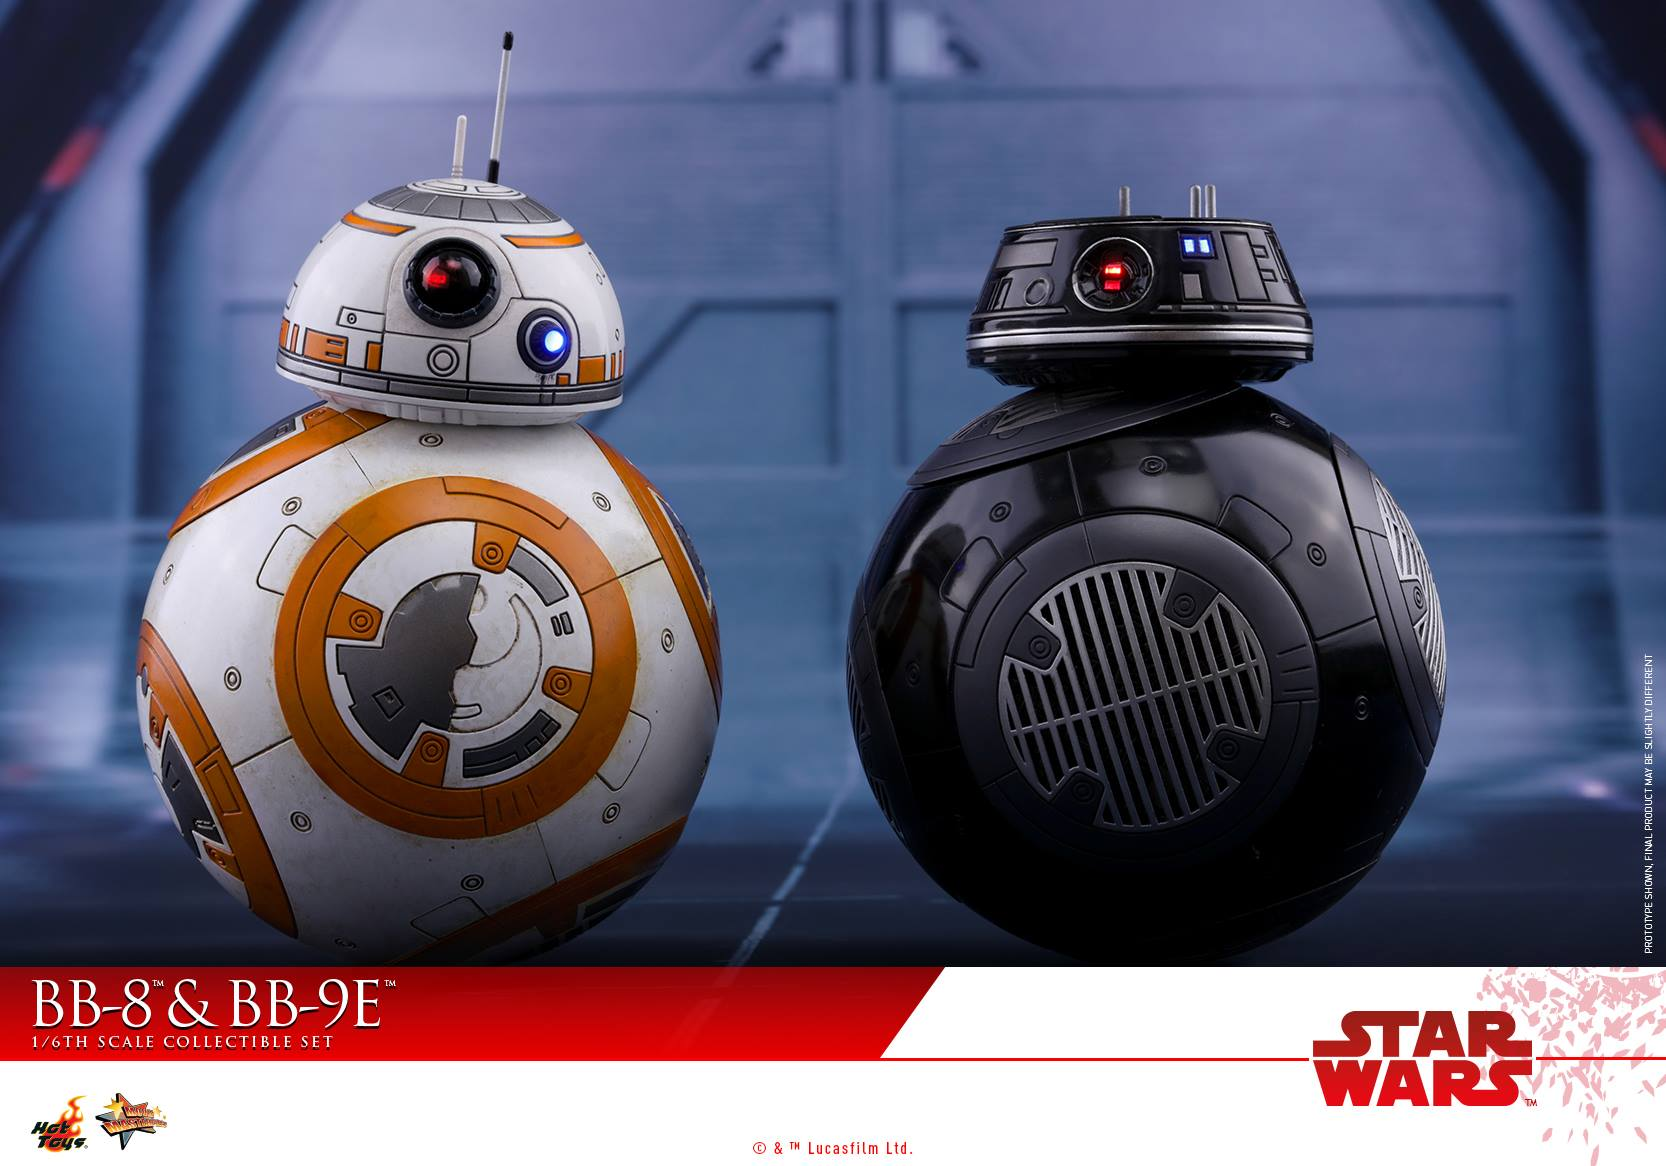 Hot Toys - MMS442 - Star Wars: The Last Jedi - BB-8 and BB-9E Set (1/6 Scale)